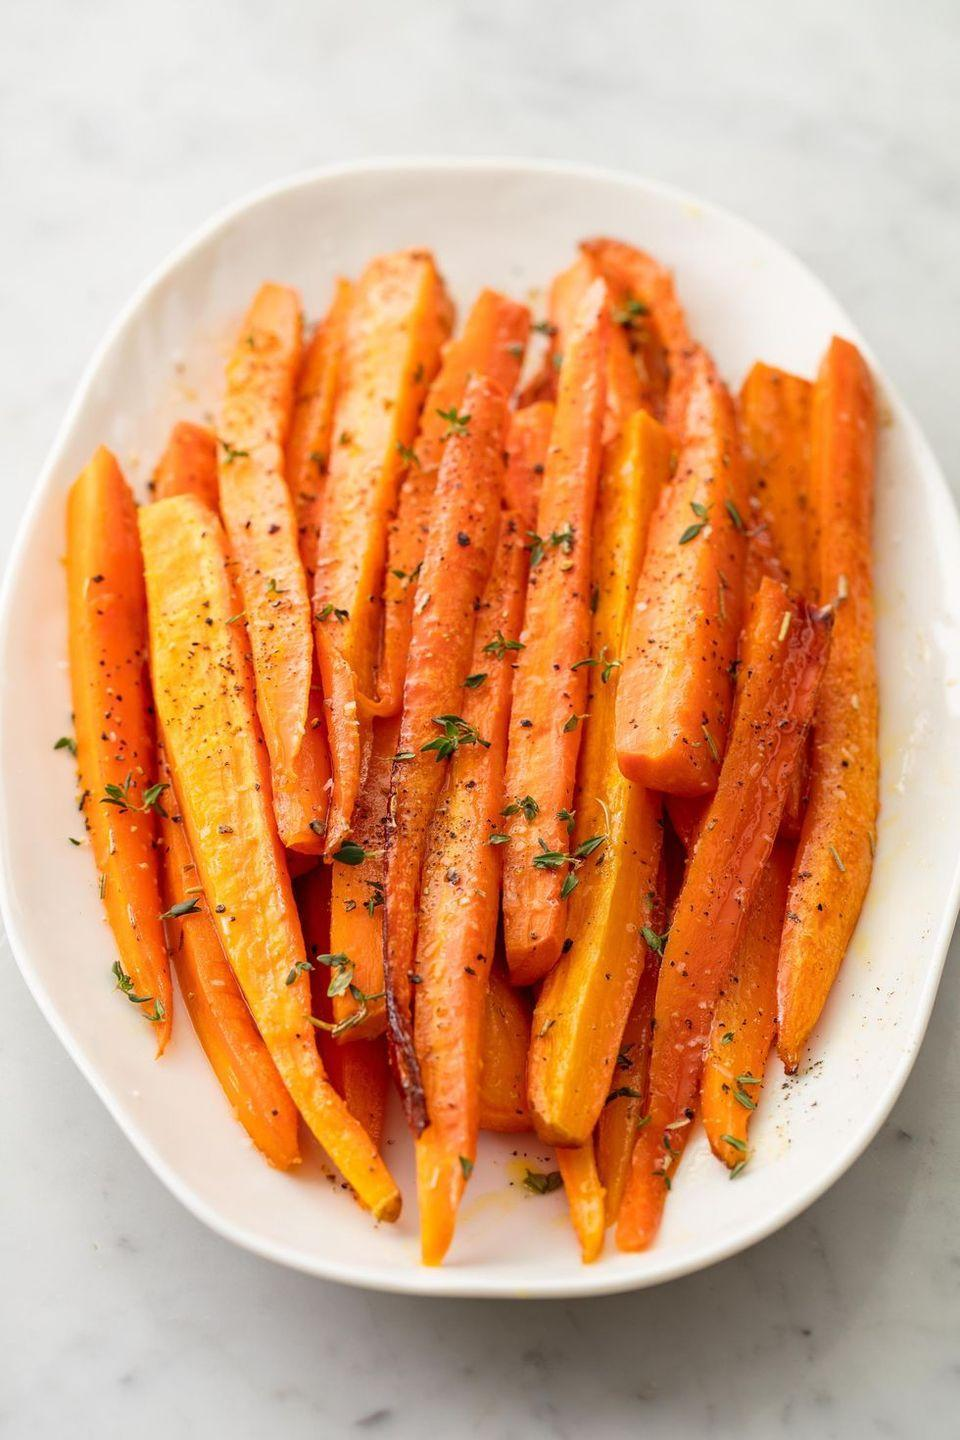 """<p>How do you show picky eaters how delicious vegetables can be? The answer is two-part: First, you make a sweet and sticky glaze; then, you roast. in the oven, the honey butter caramelises and turns plain, boring carrots into the most addictive side dish. Don't have dried rosemary? Use dried oregano instead. Not into thyme? Just skip it. This dish is pretty much impossible to screw up.</p><p>Get the <a href=""""https://www.delish.com/uk/cooking/recipes/a28934289/honey-glazed-carrots-recipe/"""" rel=""""nofollow noopener"""" target=""""_blank"""" data-ylk=""""slk:Honey-Glazed Carrots"""" class=""""link rapid-noclick-resp"""">Honey-Glazed Carrots </a>recipe.</p>"""